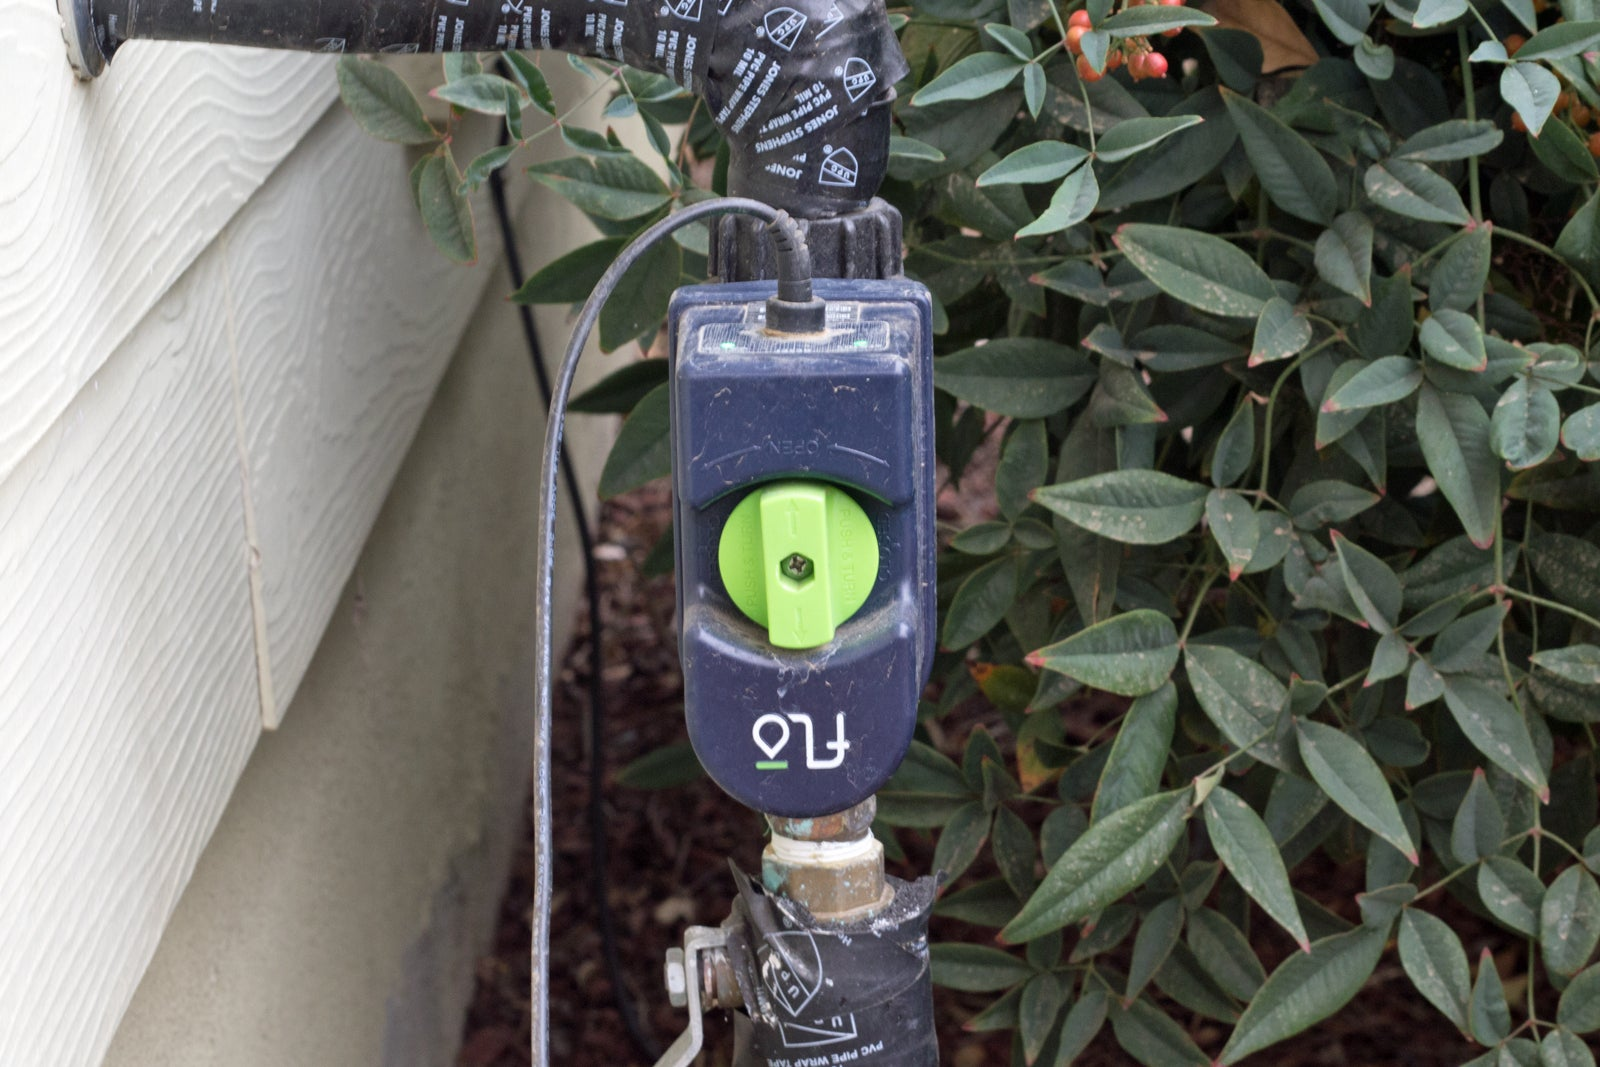 Flo smart water valve review: The high price of prevention